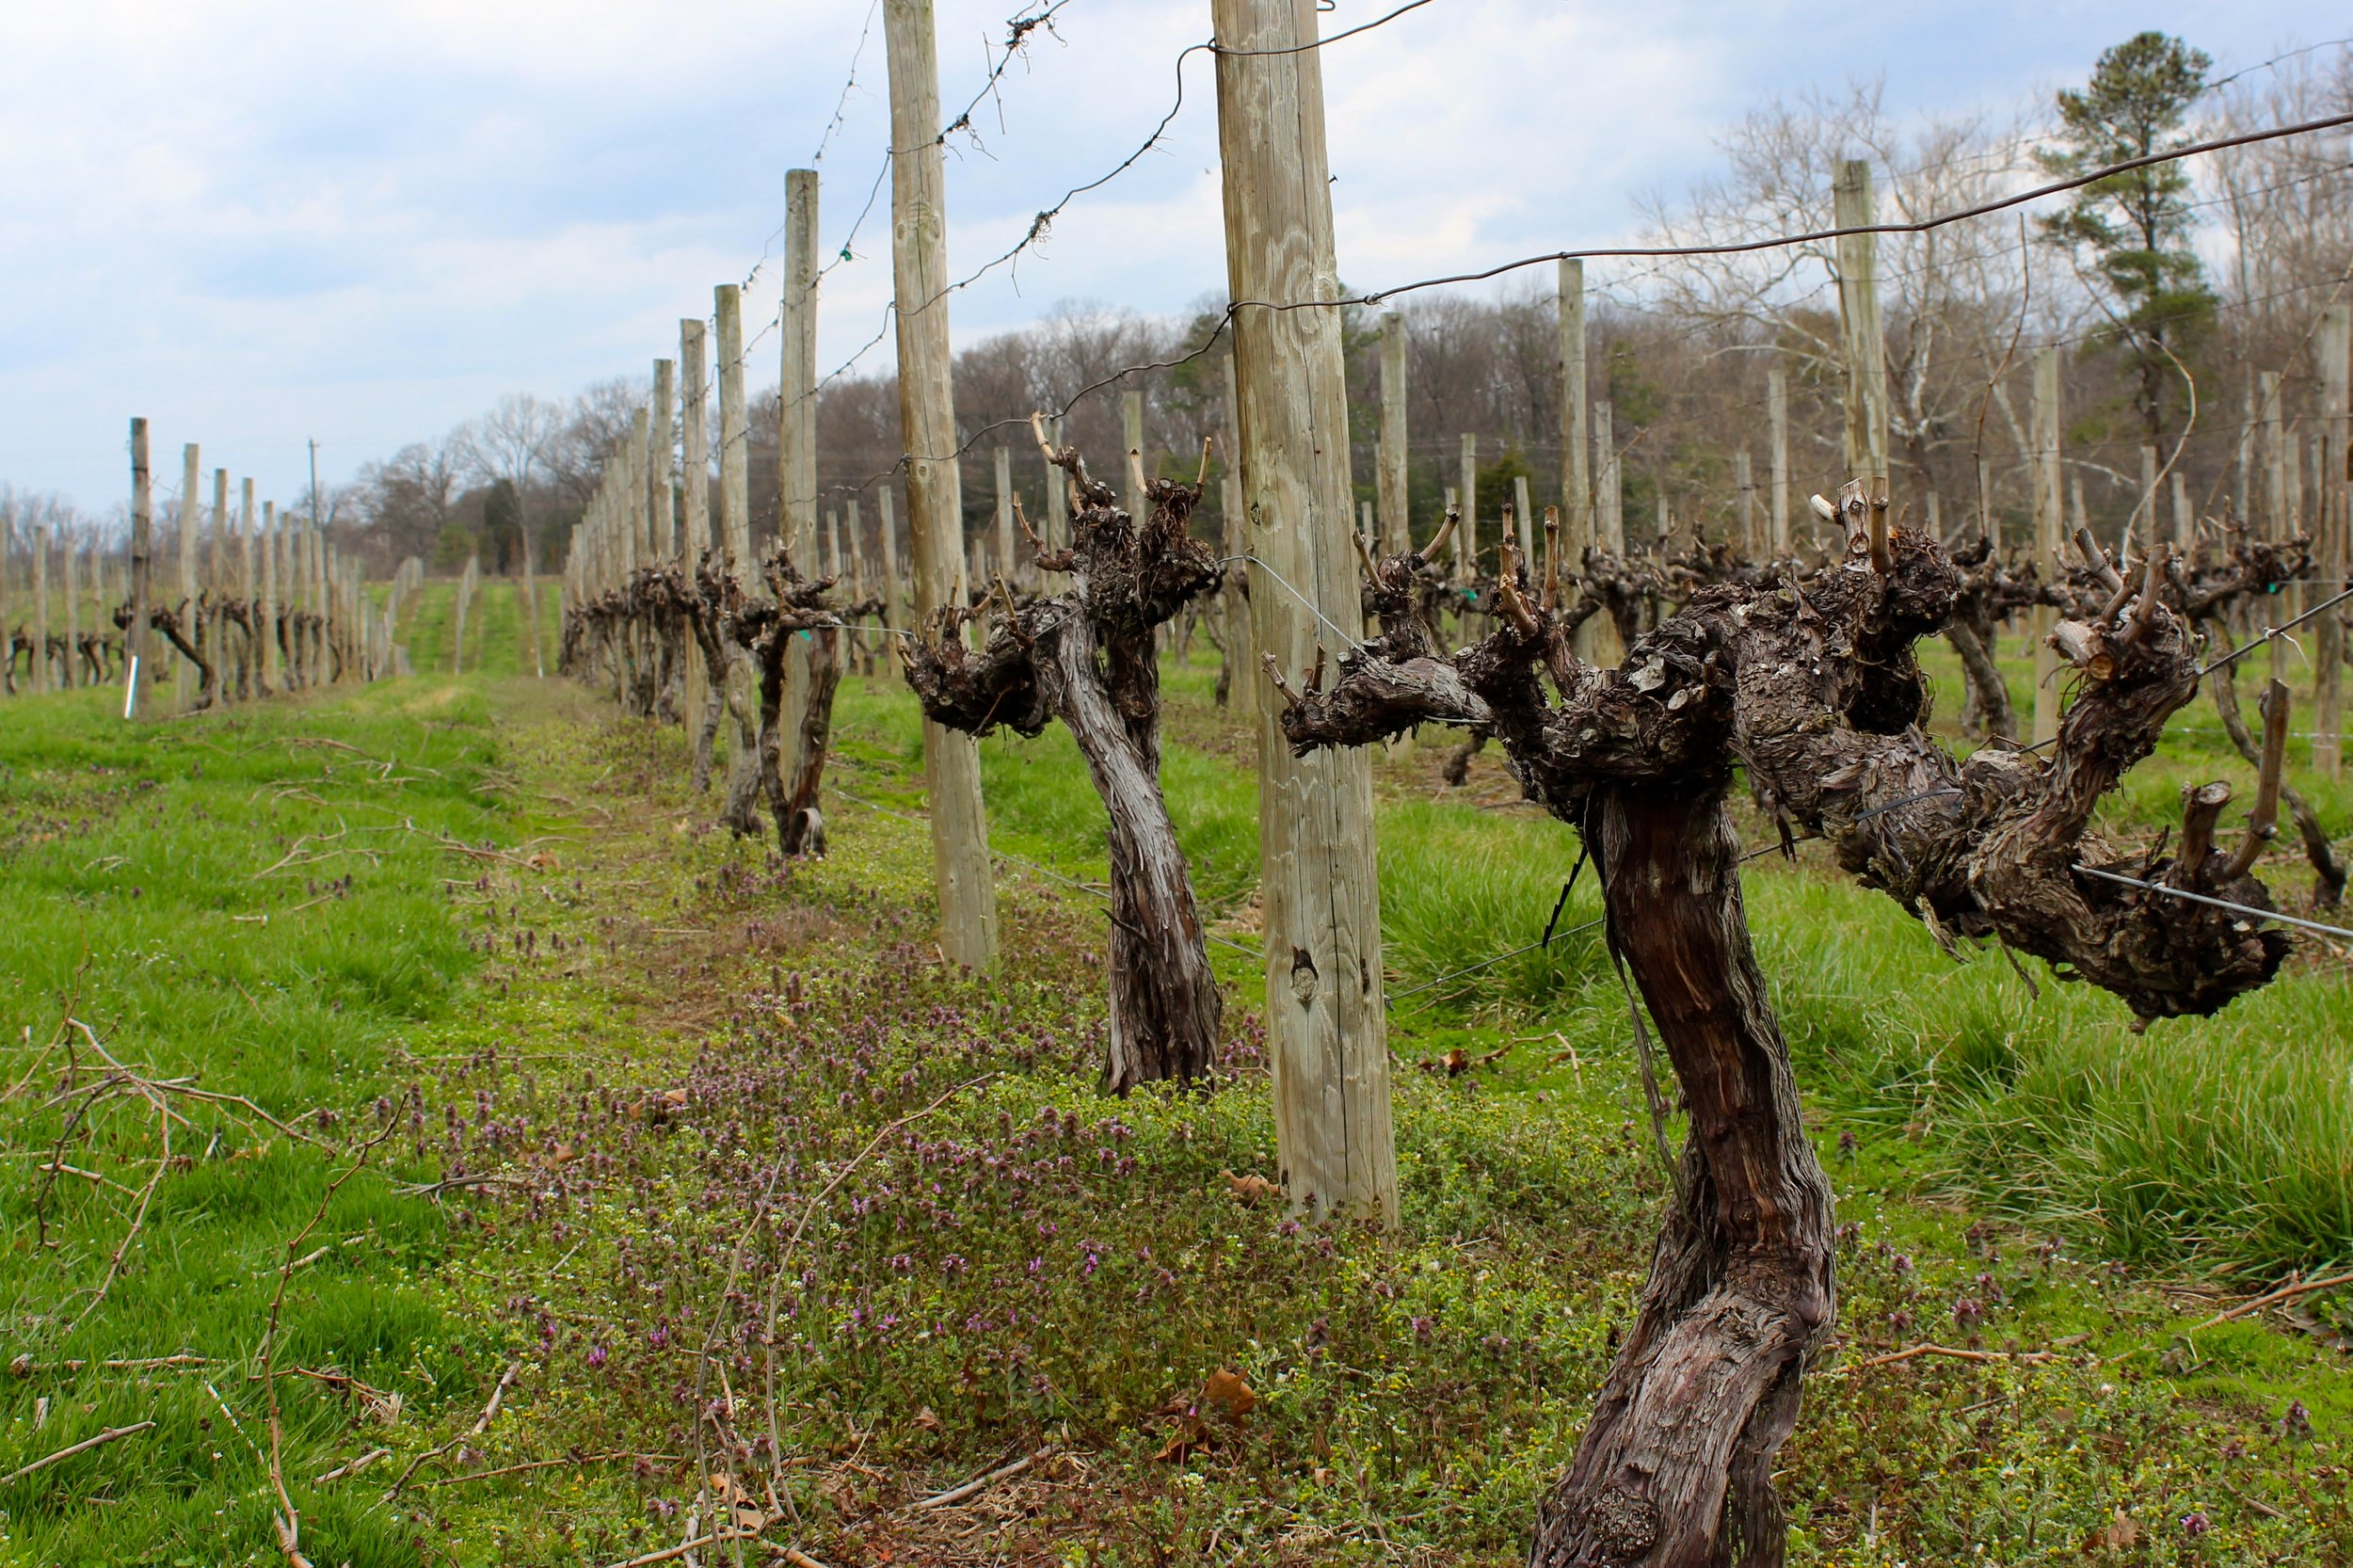 Dormant vines with winter pruning complete.  Photo credit WTM